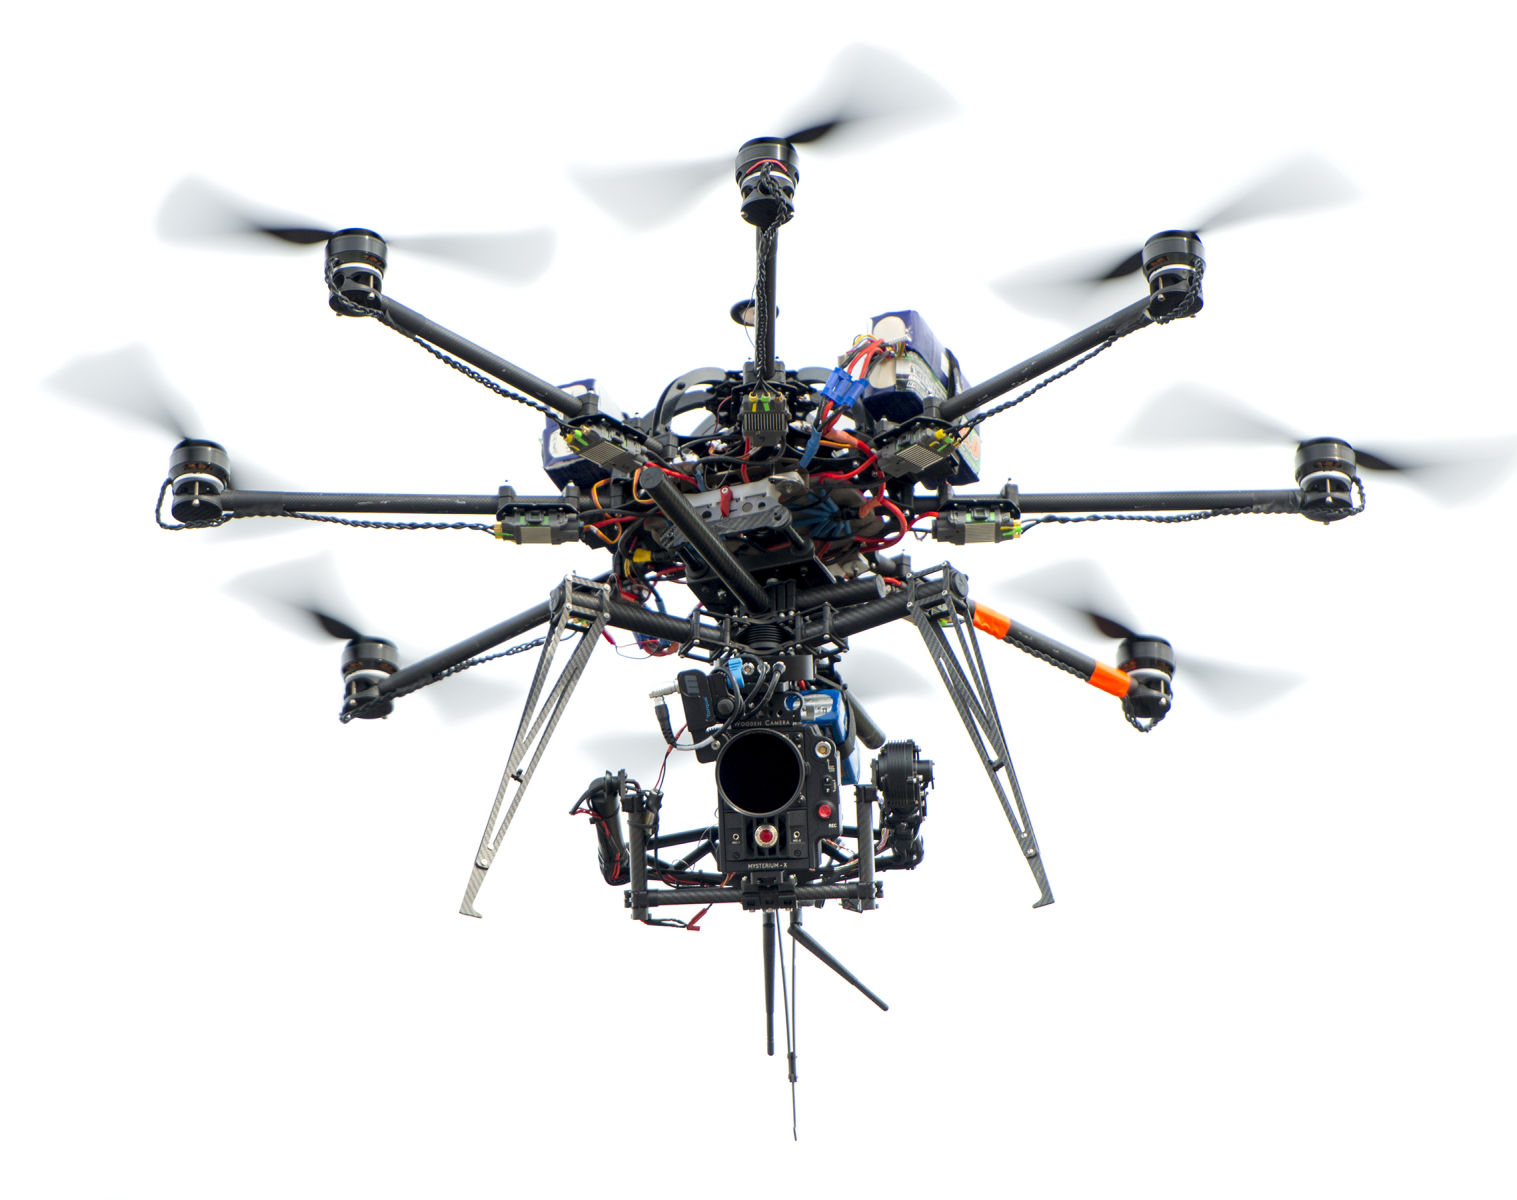 expensive and complicated drone